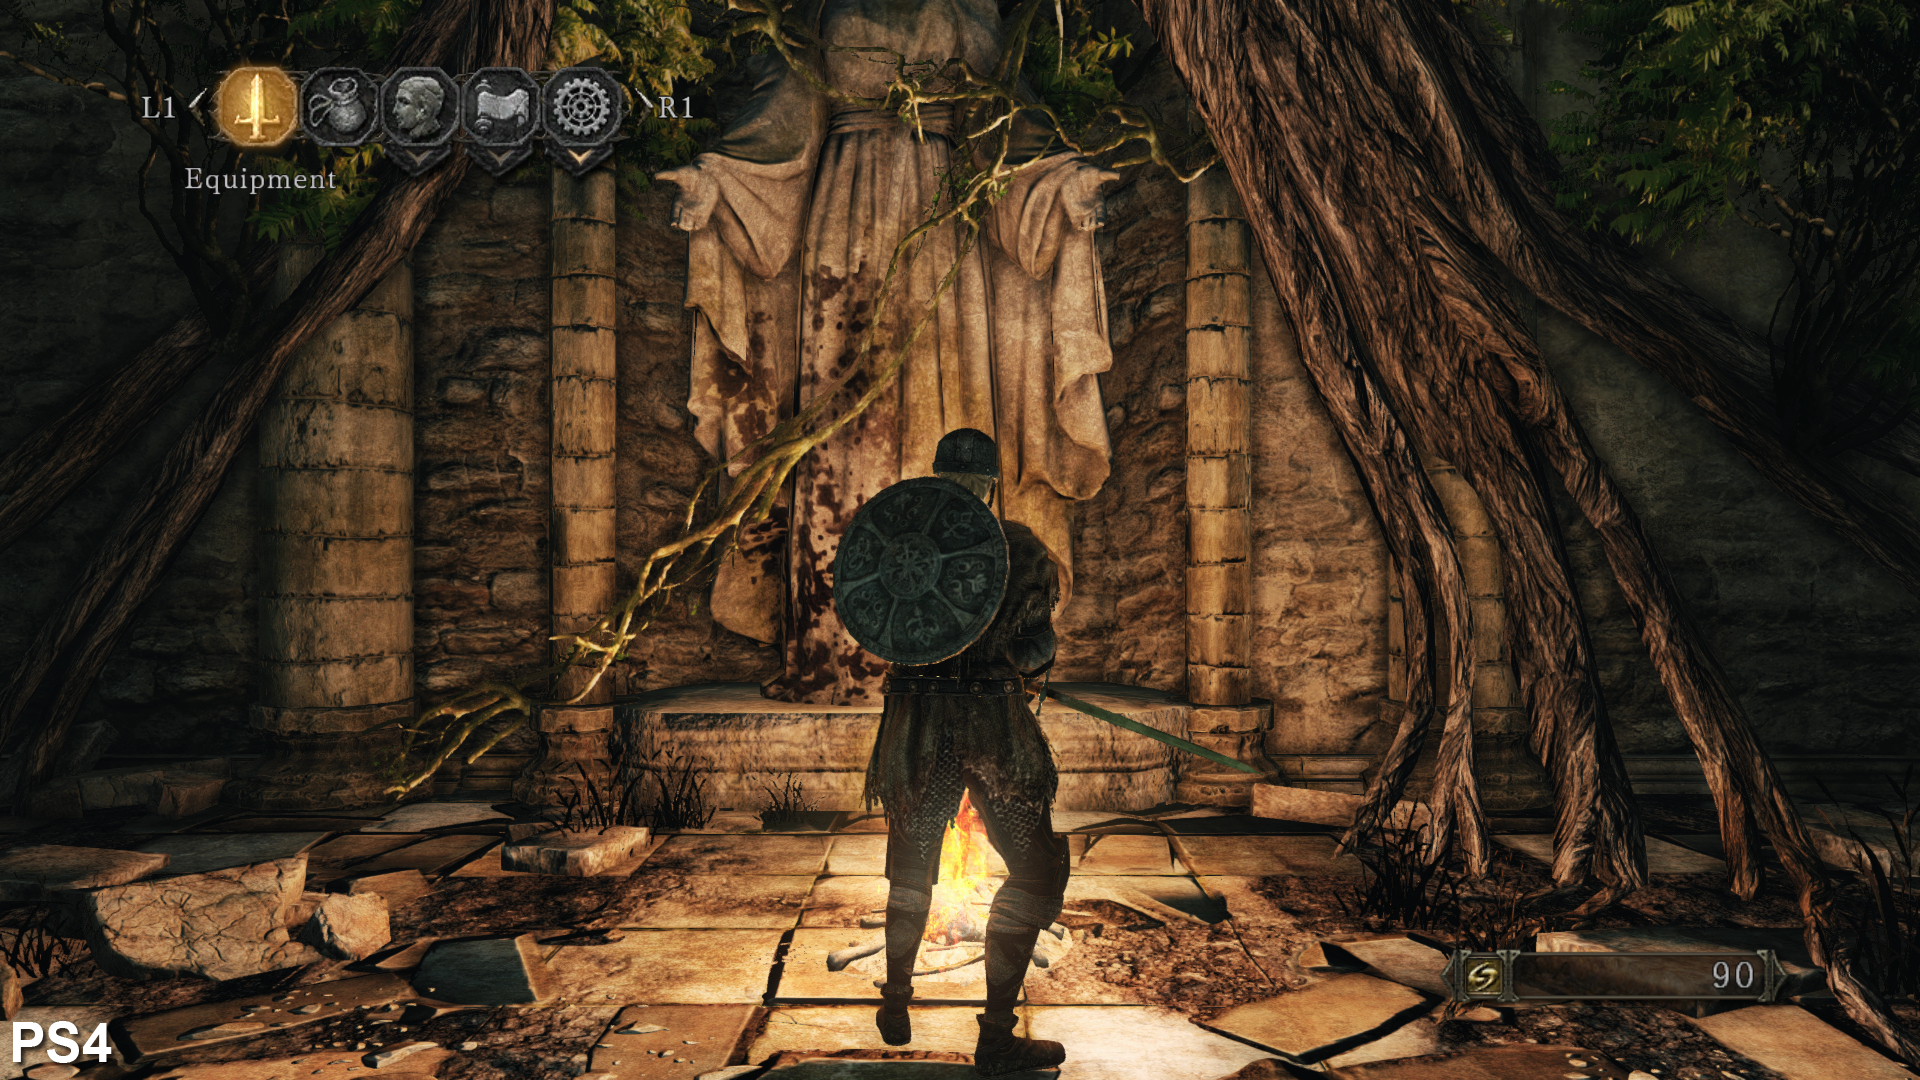 Digital Foundry: Hands-on with Dark Souls 2 on PS4